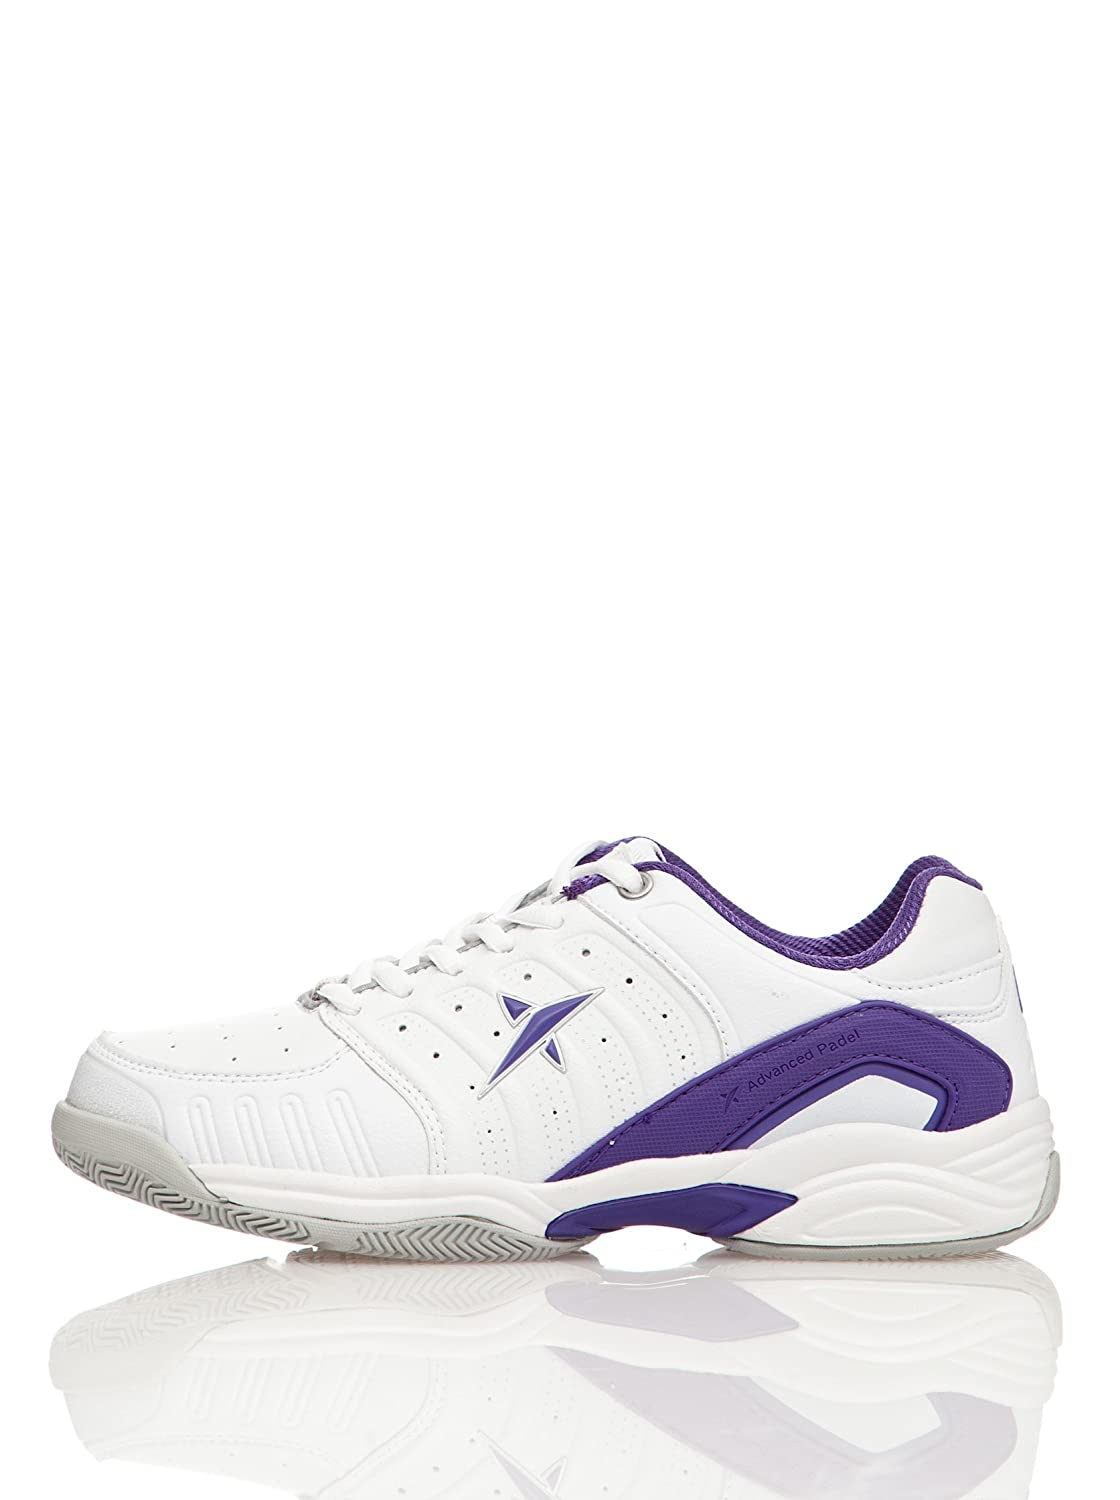 DROP SHOT Zapatillas Rider XC Blanco 46: Amazon.es: Zapatos y ...